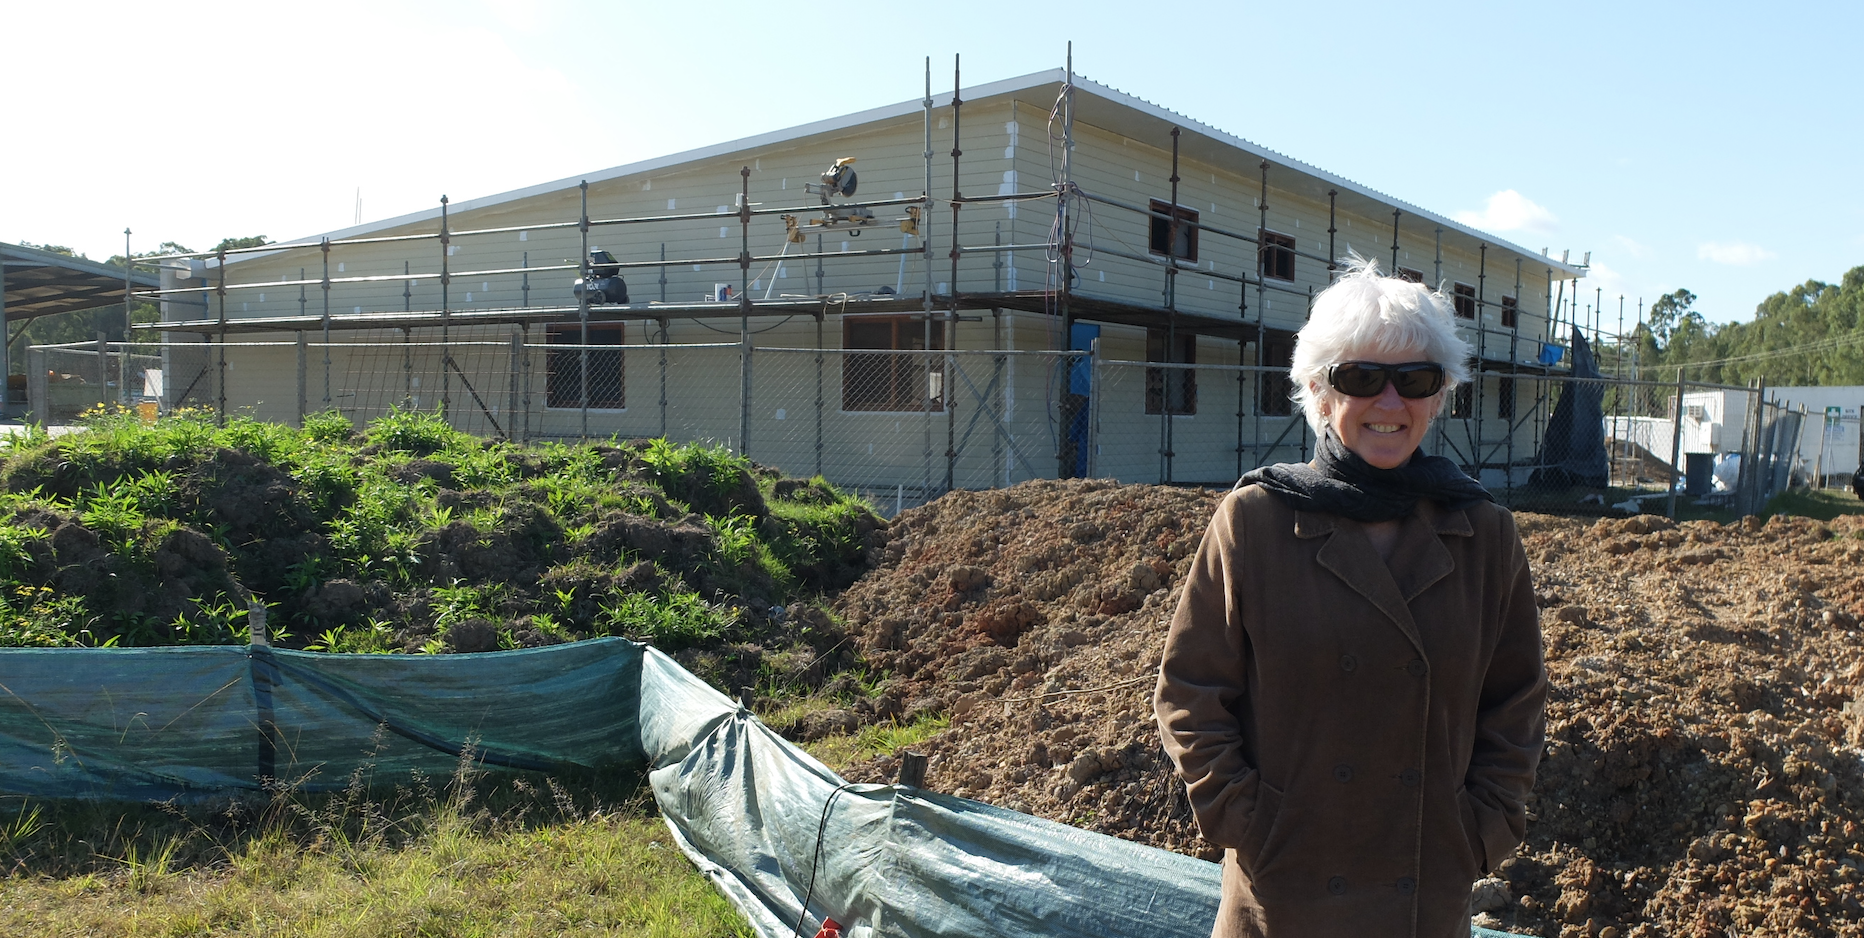 Linda keeps an eye on progress of one of her projects as it nears completion.